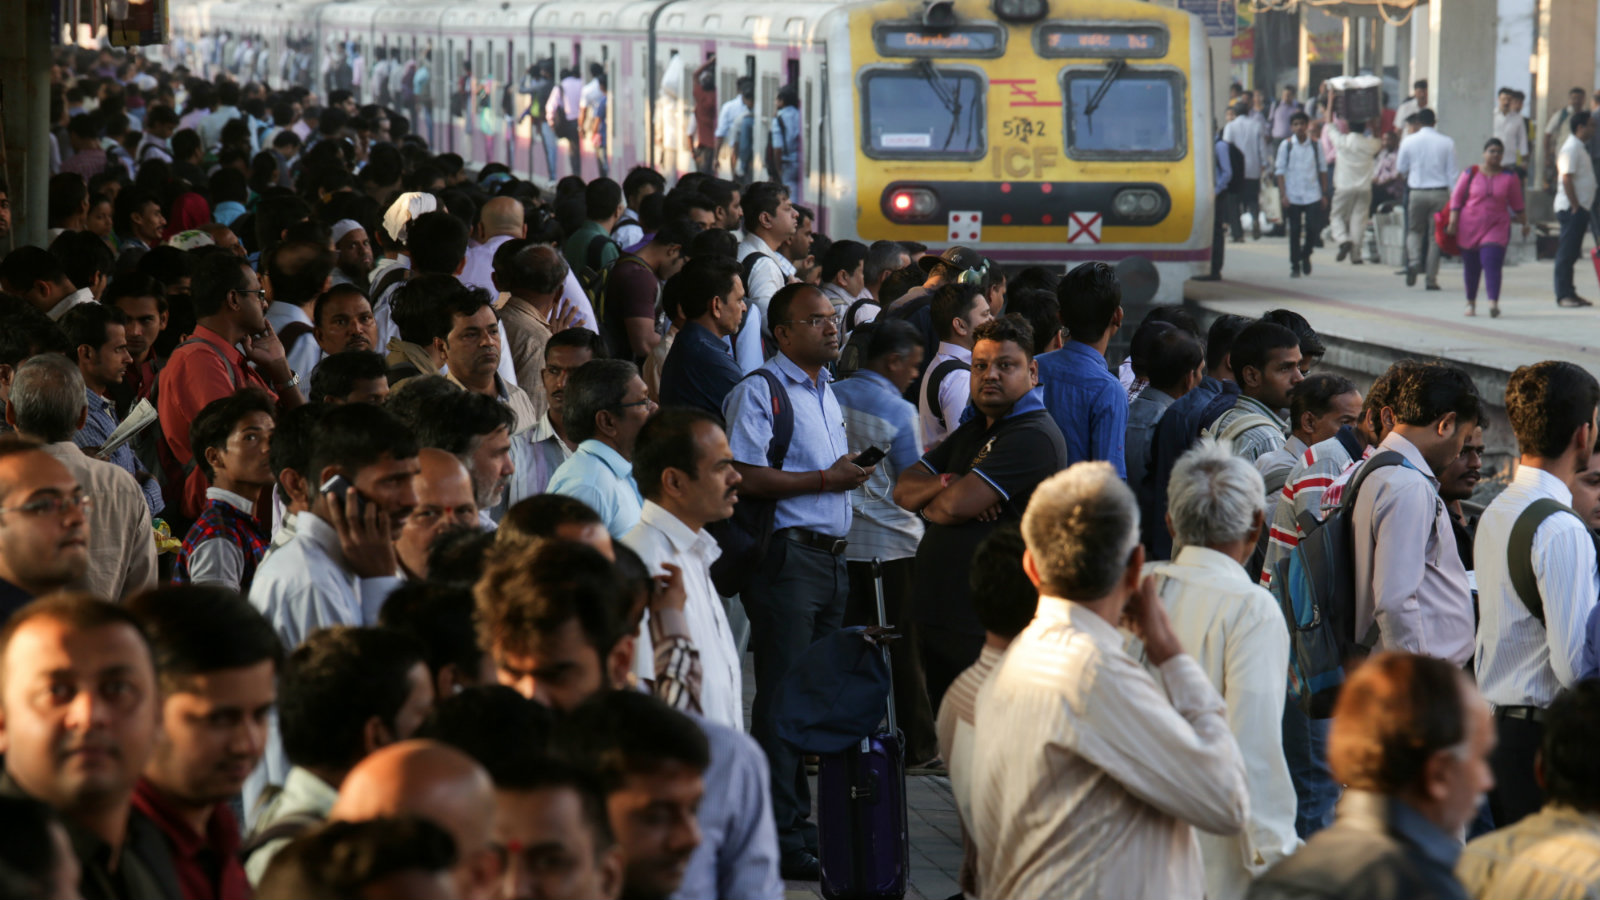 Commuters wait to board a local train in Mumbai, India, 01 February 2017. Indian Finance Minister Arun Jaitley presented the Union Budget 2017 in New Delhi and for the first time the Railway Budget was also presented with the Union Budget, with an announcement of a 22 per cent rise in the Railway Budget. According to media reports, Jaitley said that the effects of demonetization are not expected to spill over to the next year and the double-digit high inflation has been controlled.